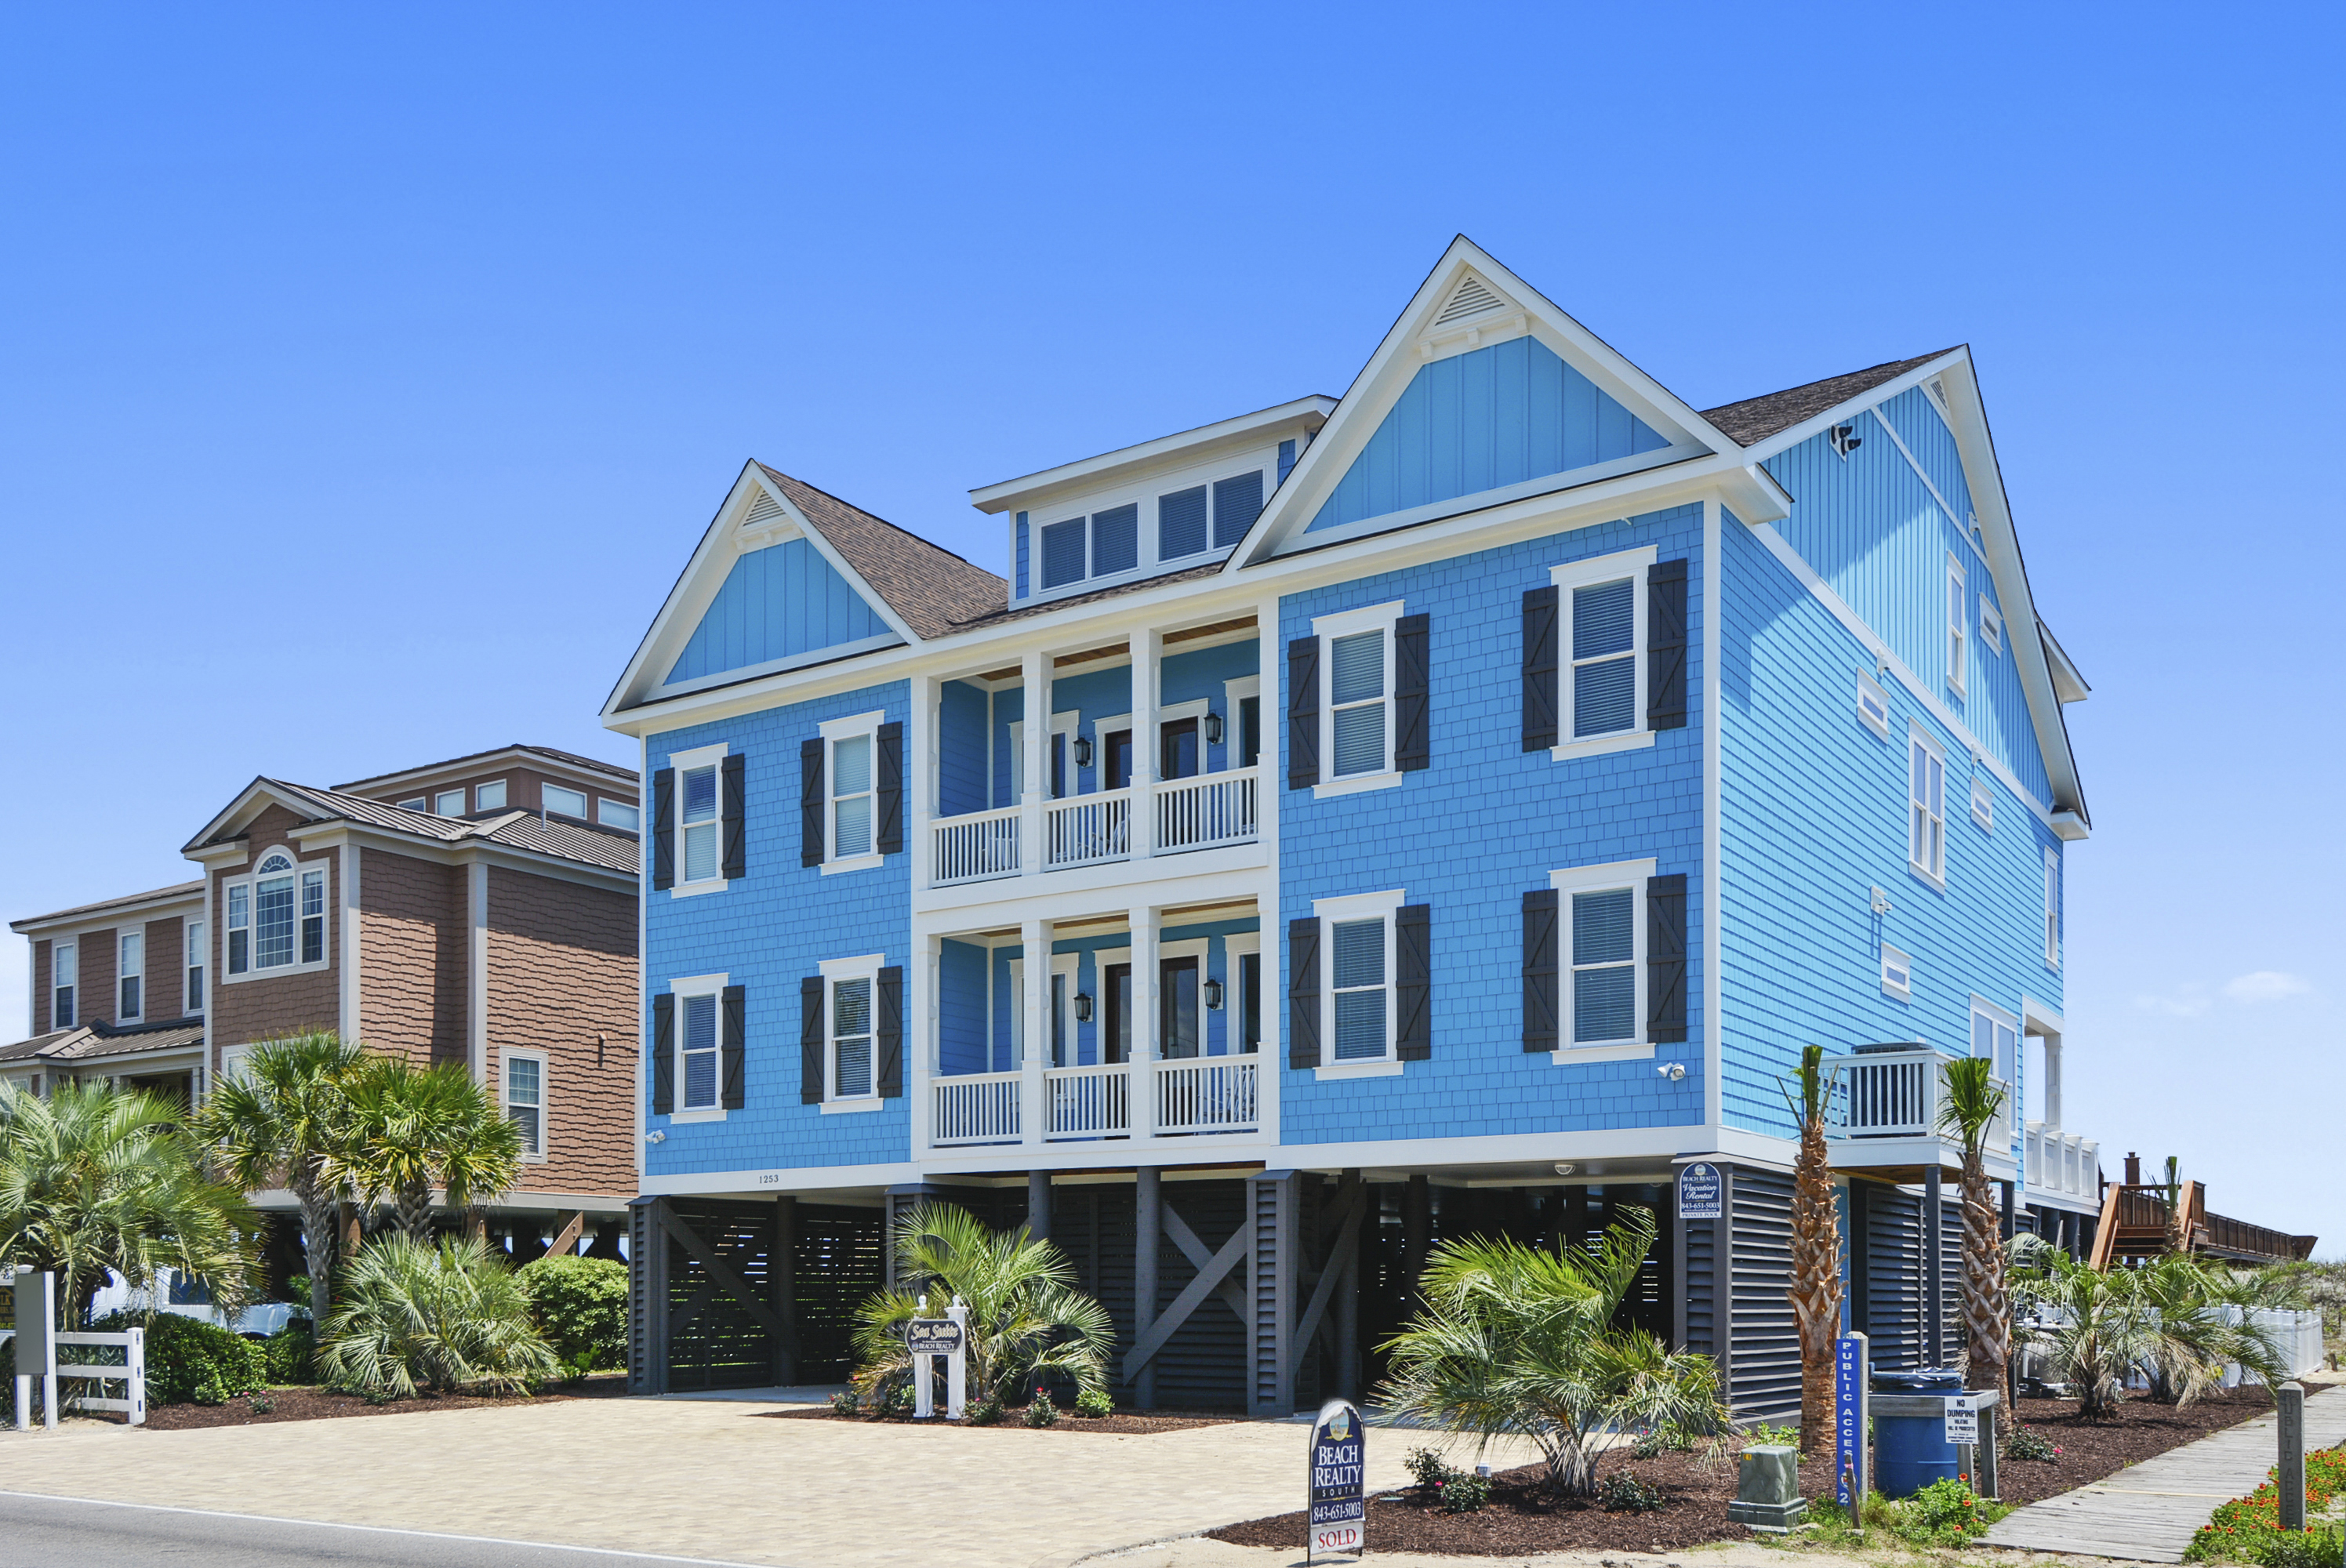 Sea Suite  S Waccamaw Dr Garden City SC  Beach Realty - House garden city